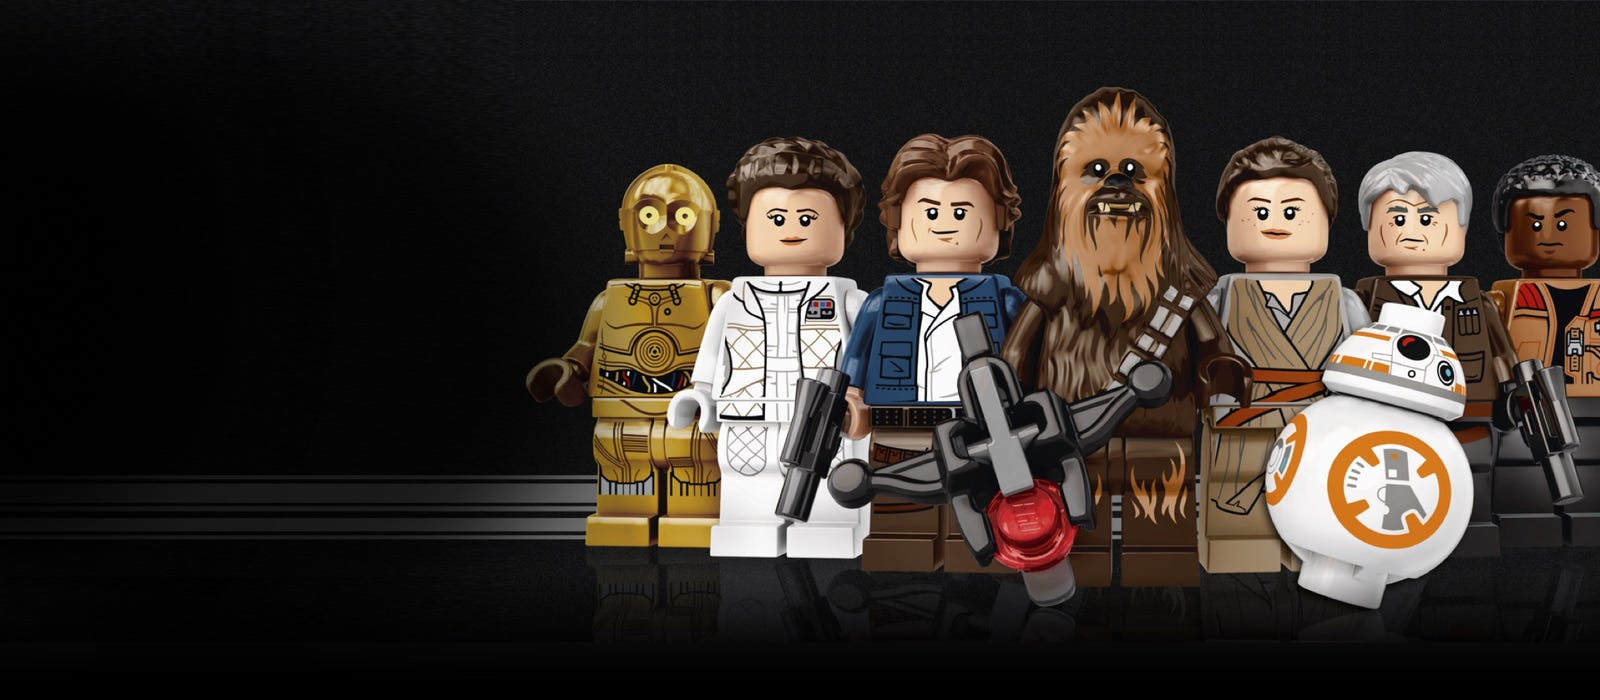 Personages uit LEGO® Star Wars™